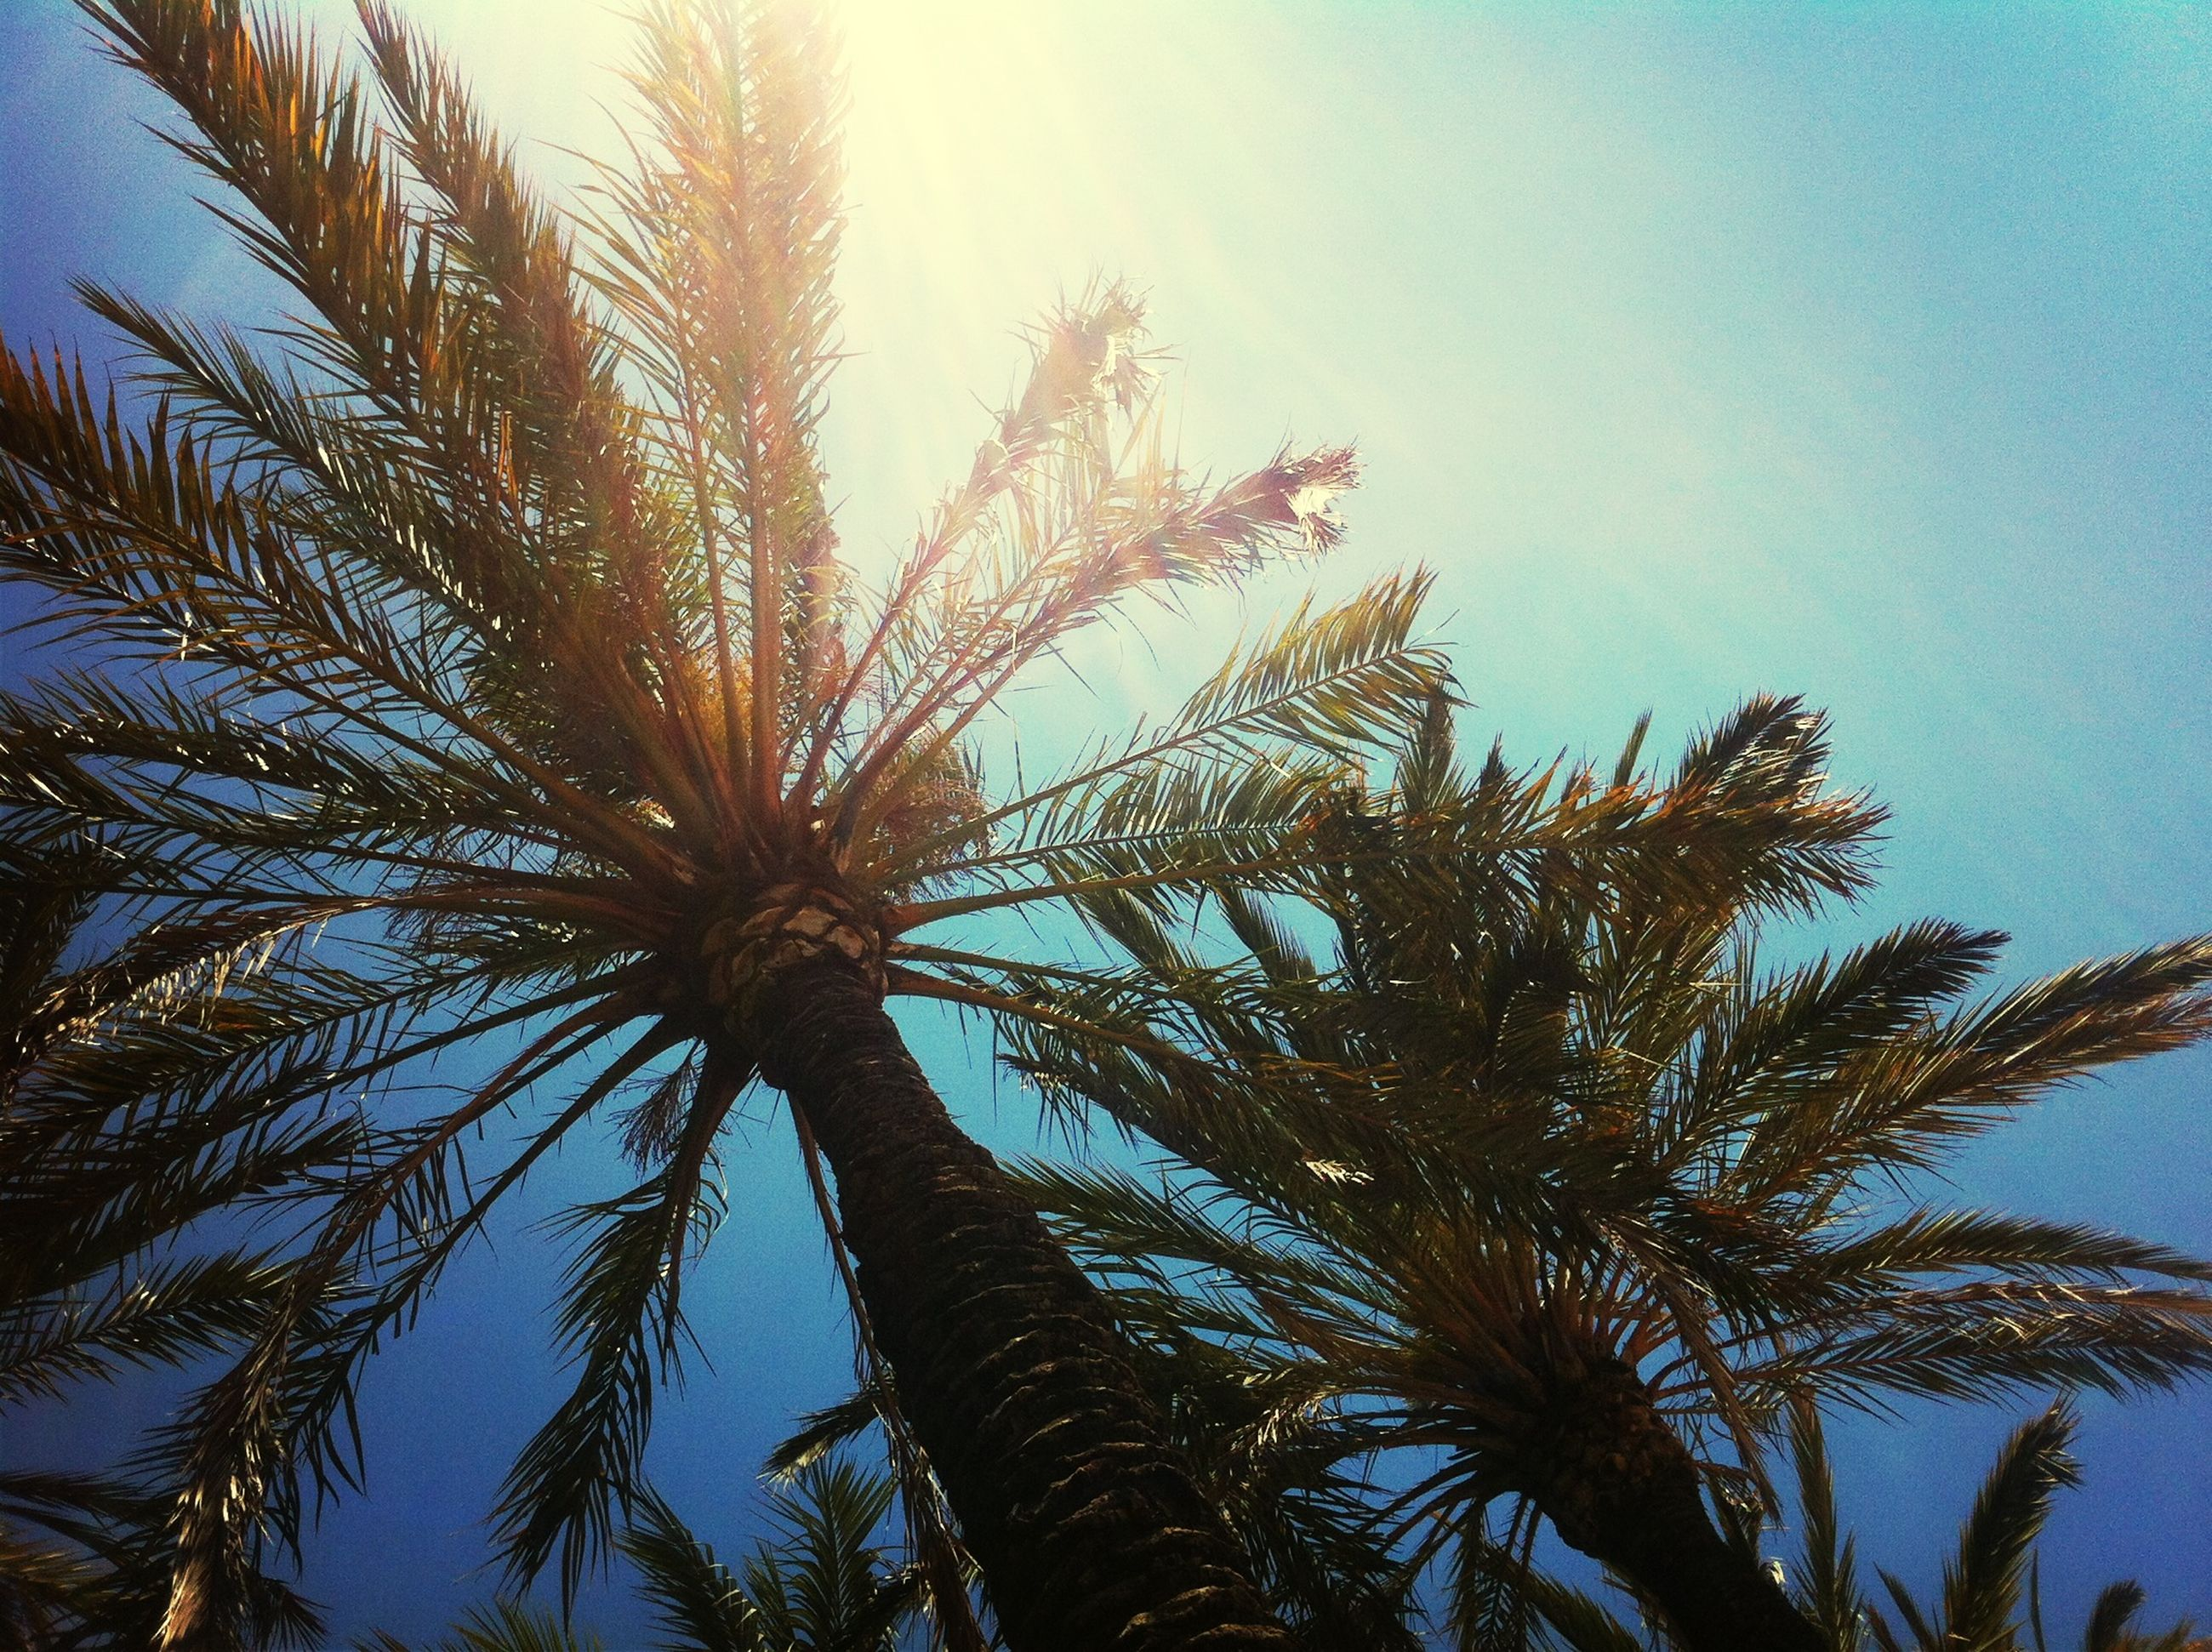 low angle view, tree, growth, palm tree, clear sky, tranquility, nature, branch, sky, beauty in nature, sun, sunlight, scenics, tranquil scene, blue, tree trunk, outdoors, silhouette, leaf, no people